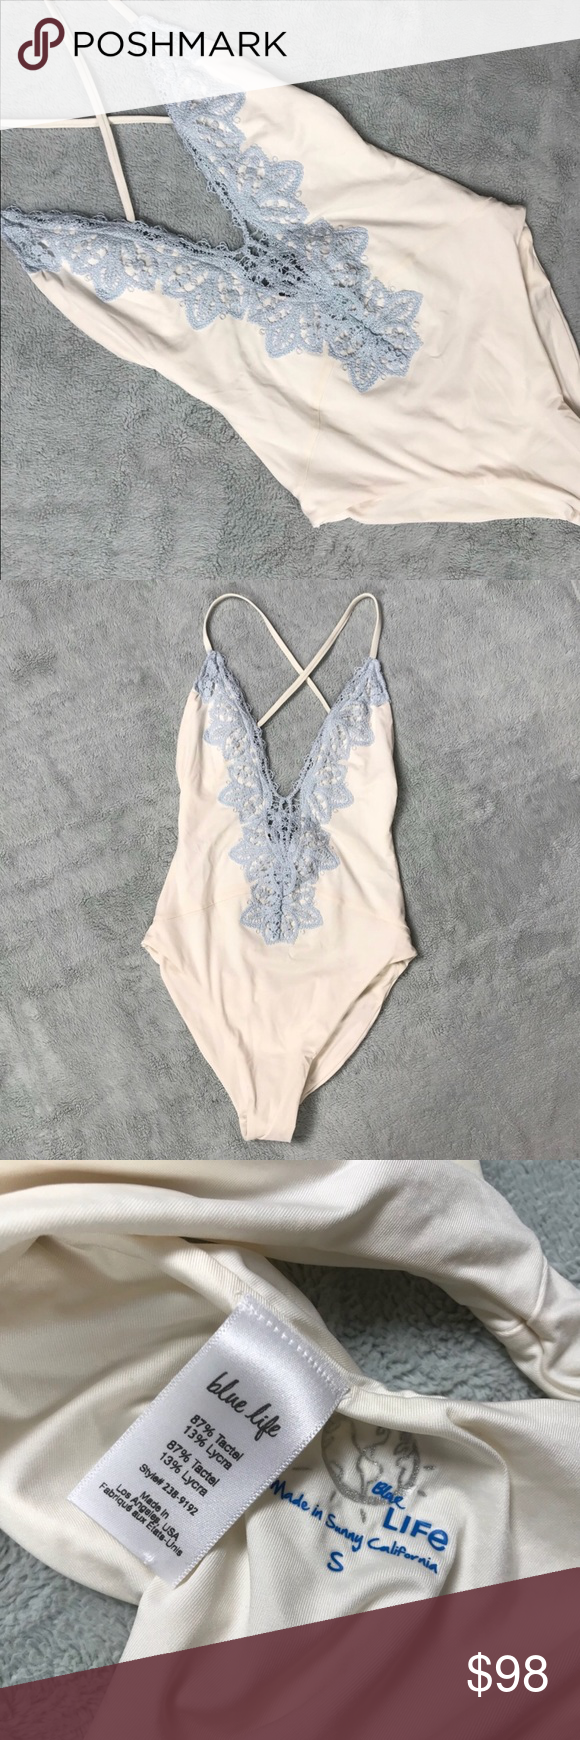 Blue Life Eclipse 1 Piece Swimsuit Something Blue Good used condition. Eclipse Swimsuit by Blue Life in Something Blue, a gorgeous white with light blue lace detailing. So gorgeous & perfect for a bride on a beach honeymoon. One-piece with plunging v-neck. Adjustable racerback straps that crisscross above open back. Made in USA. Note: light interior wear/sticker residue from removing hygienic liner, see photos. Size small, see photos for measurements. Blue Life Swim One Pieces #beachhoneymoonclothes